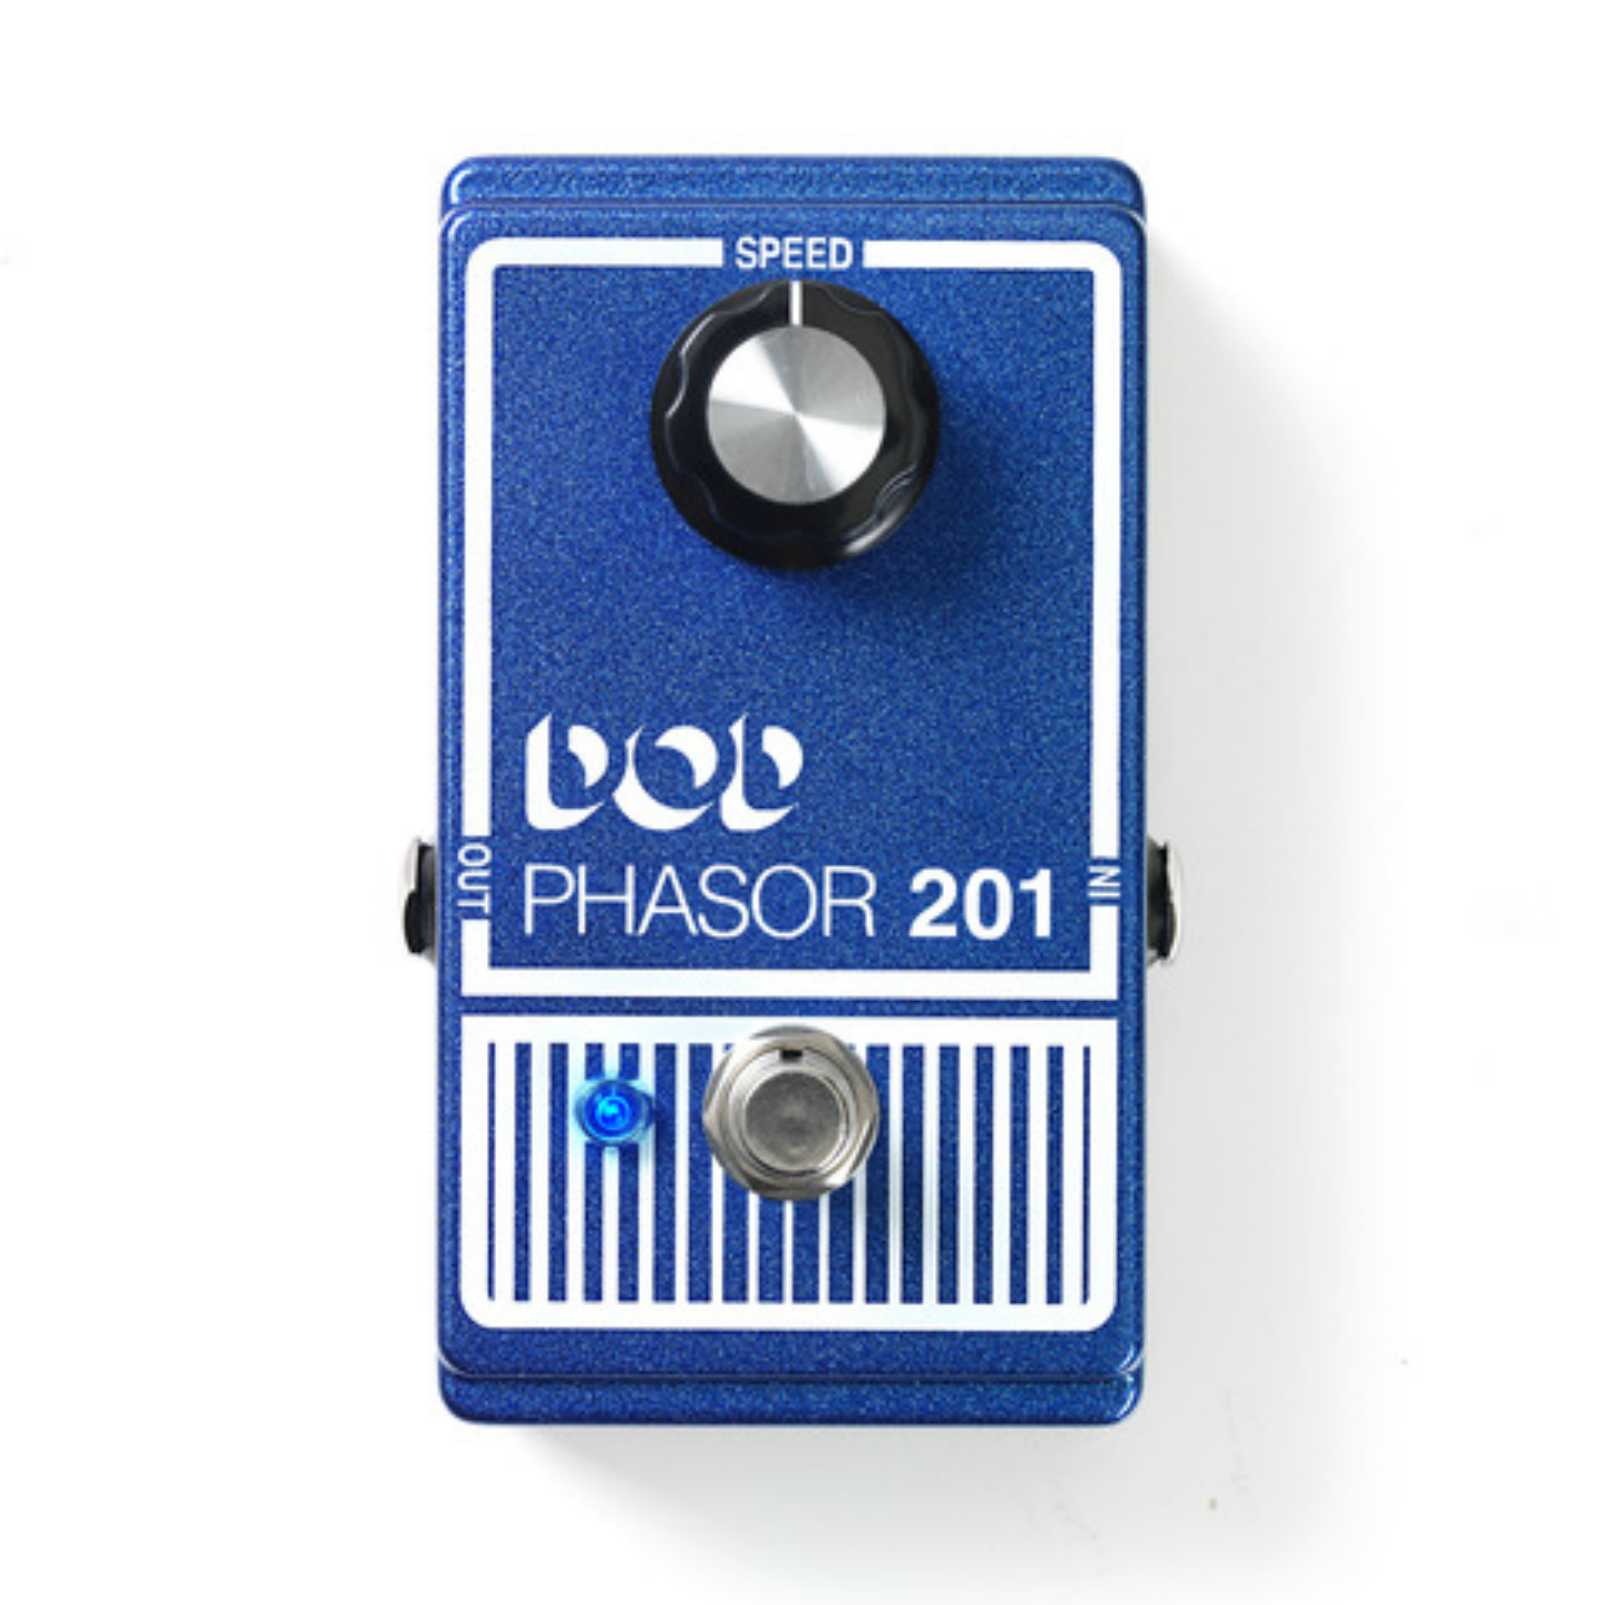 Phasor 201 - Blue - Legendary Analog Phasor Effect Pedal with true-bypass - Front